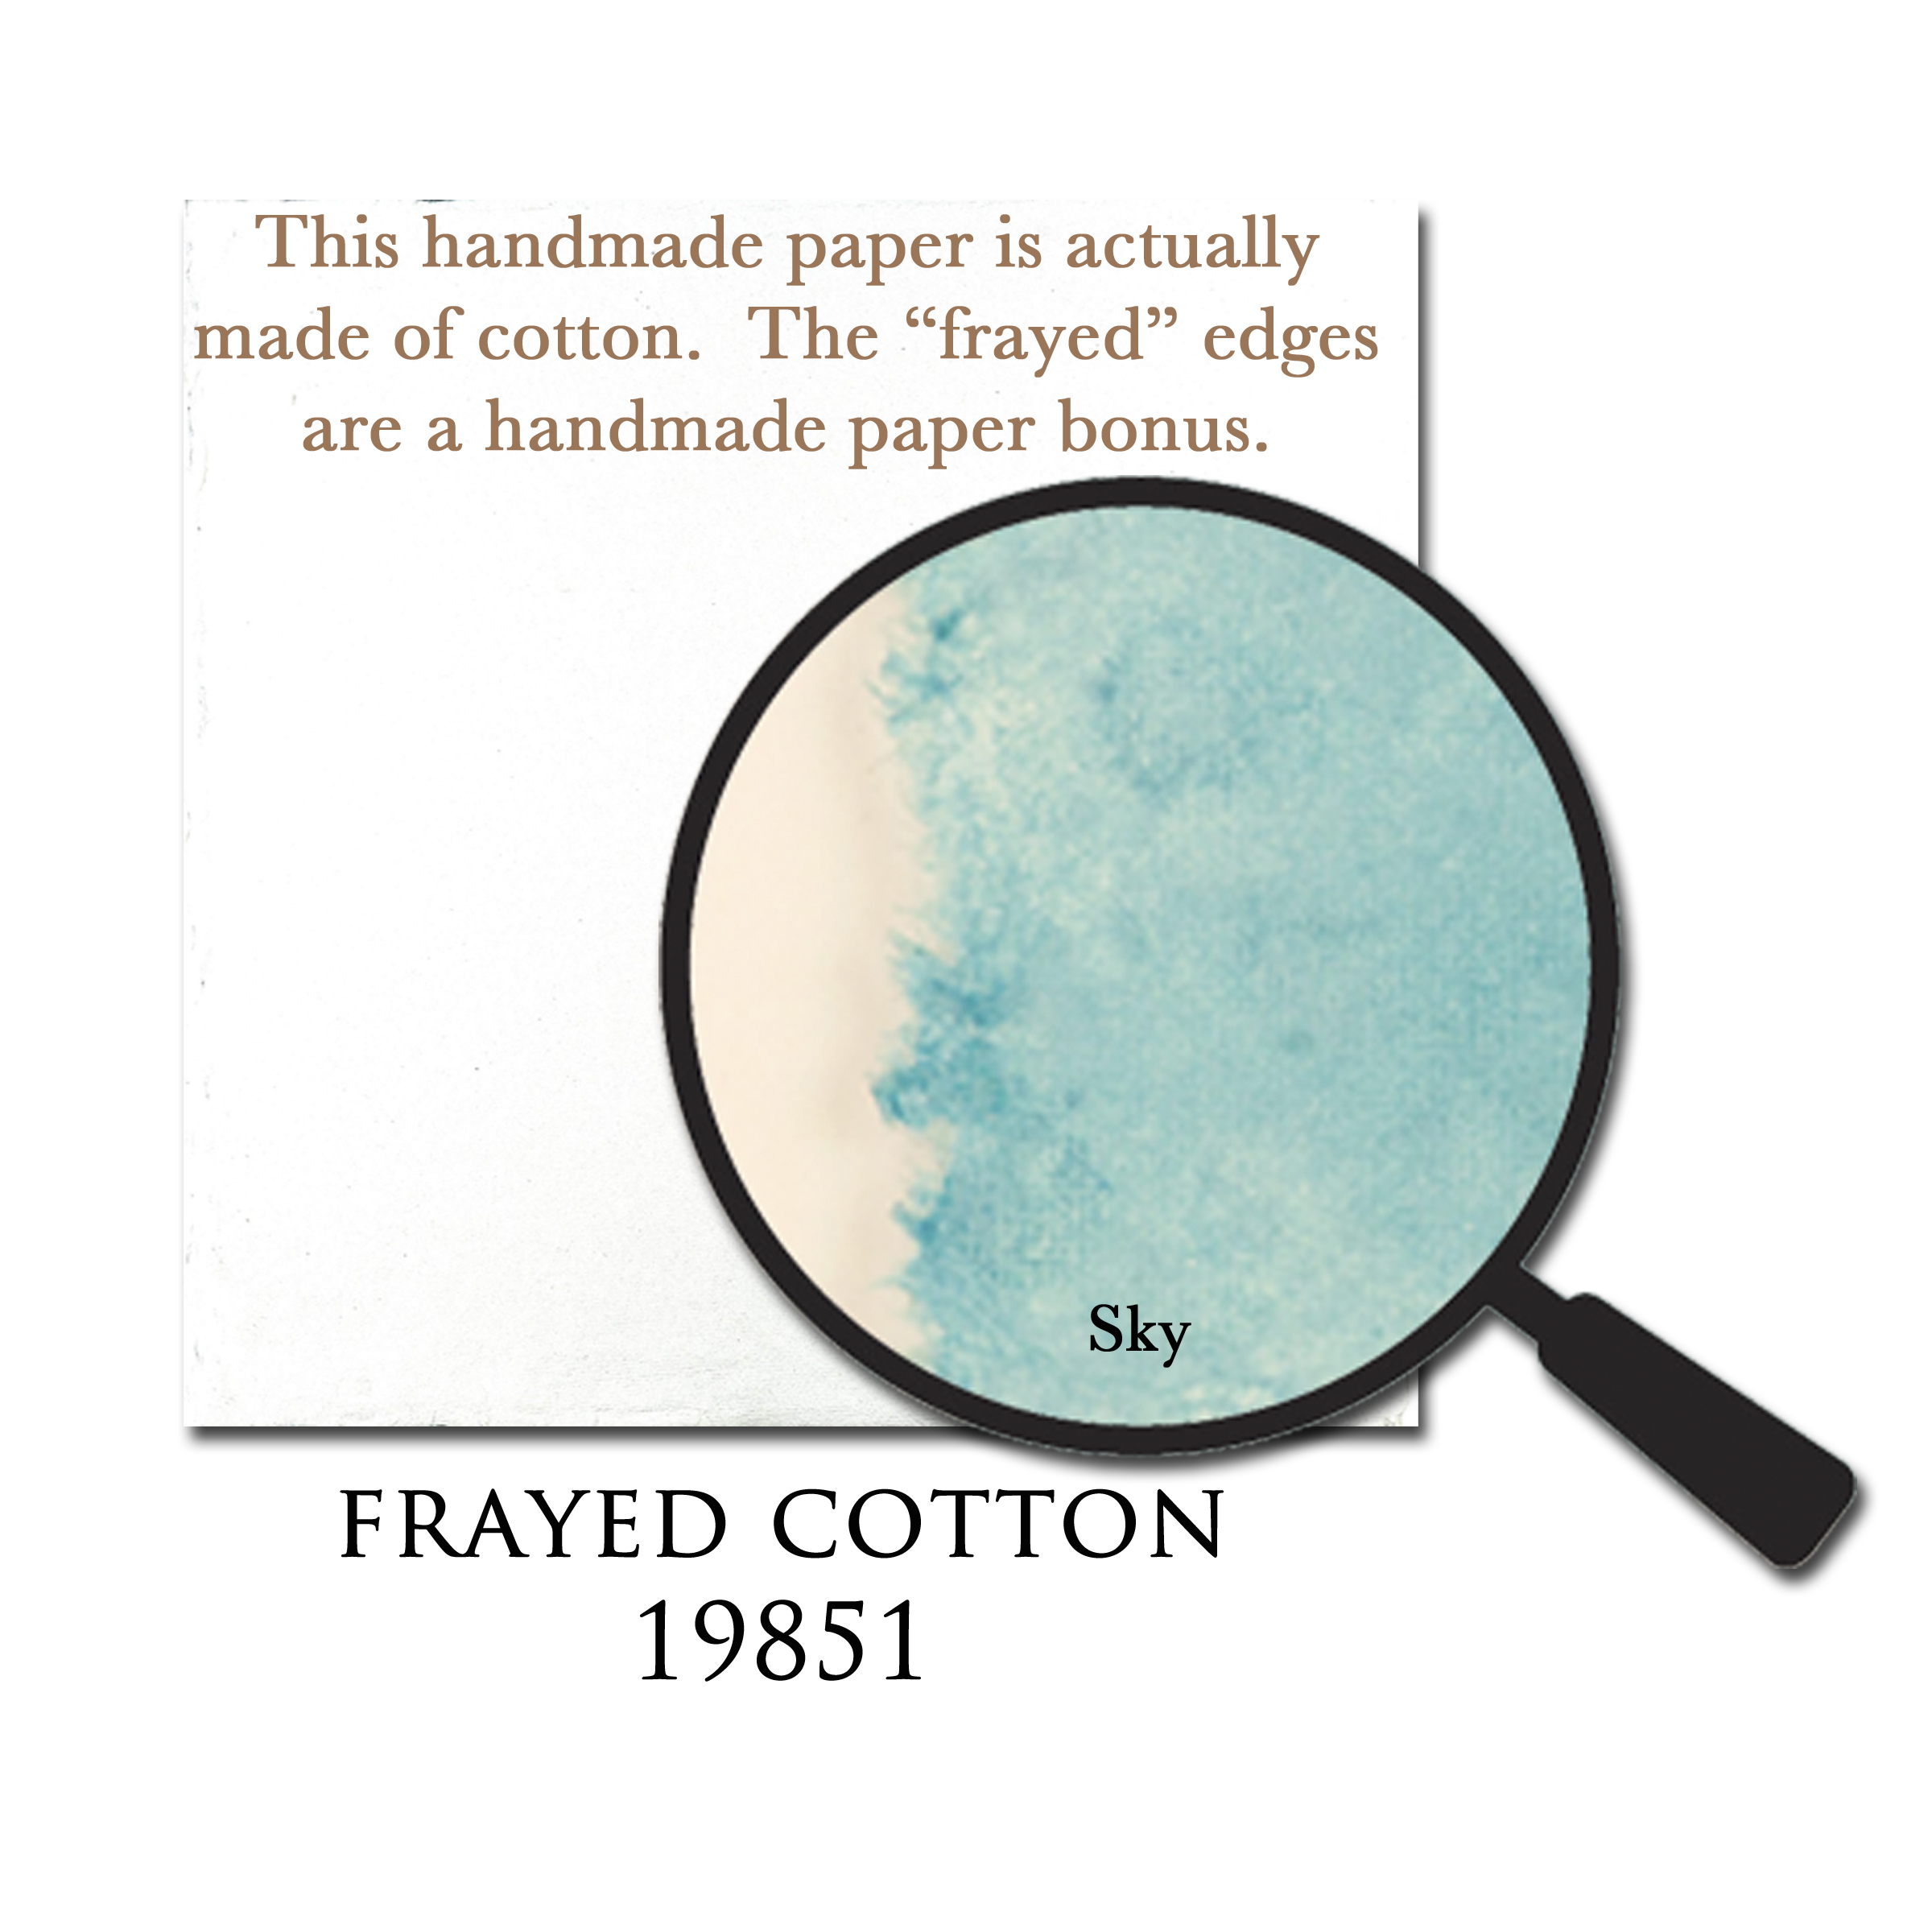 19851-frayed-cotton